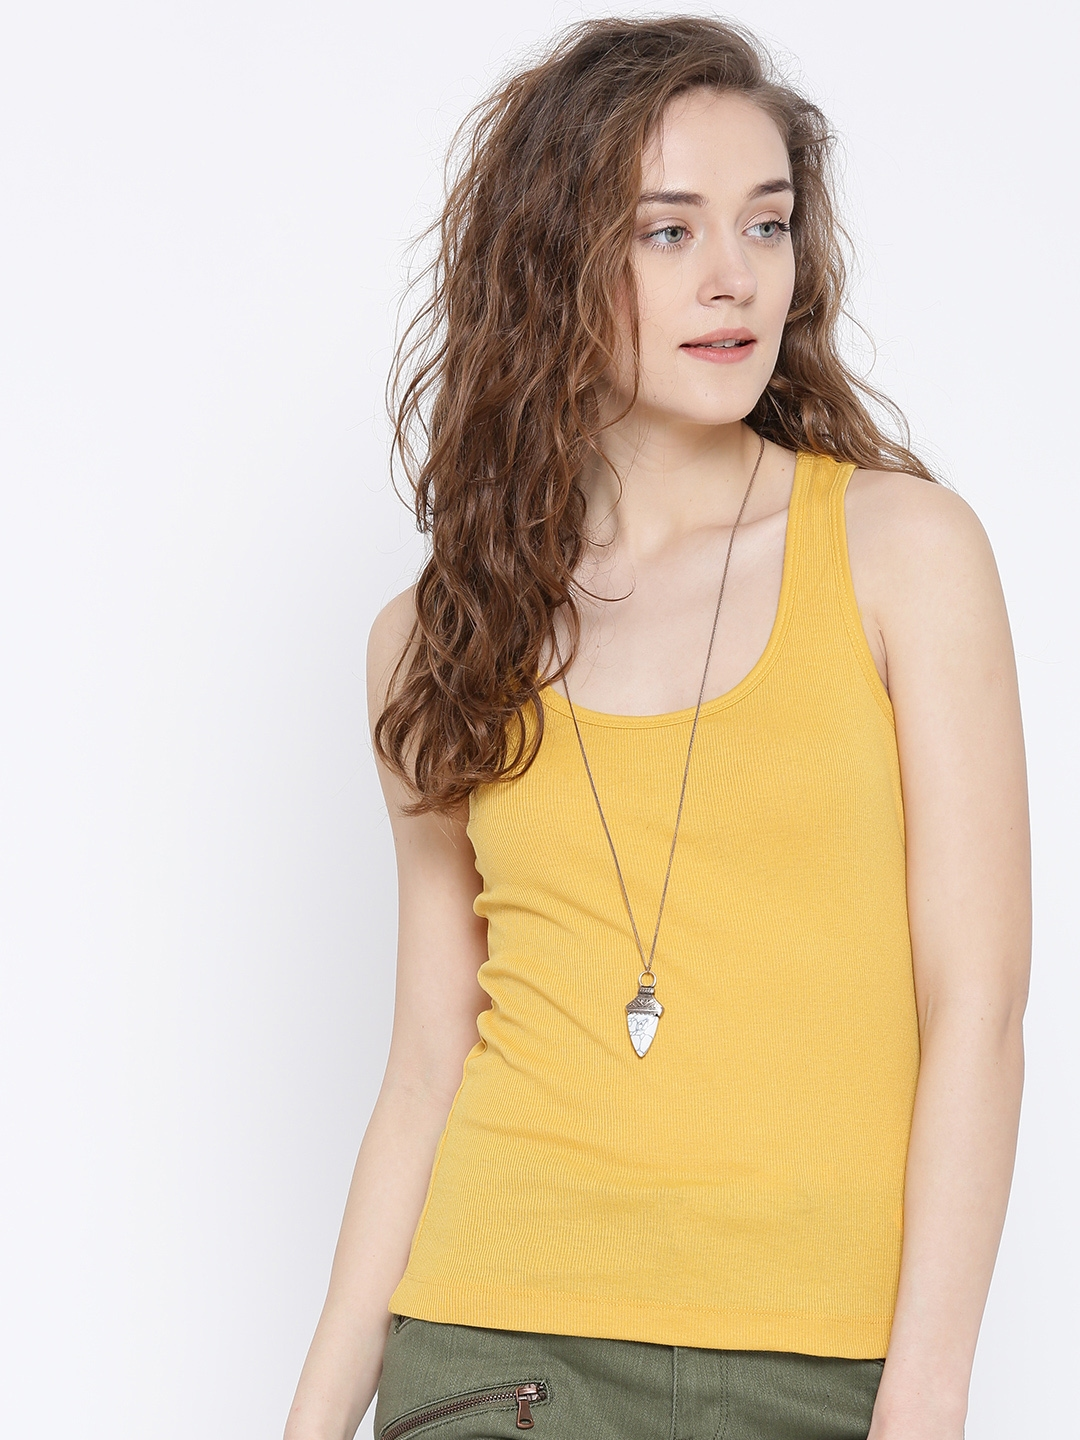 748e87a1ae693 Buy FOREVER 21 Women Mustard Yellow Tank Top - Tops for Women ...